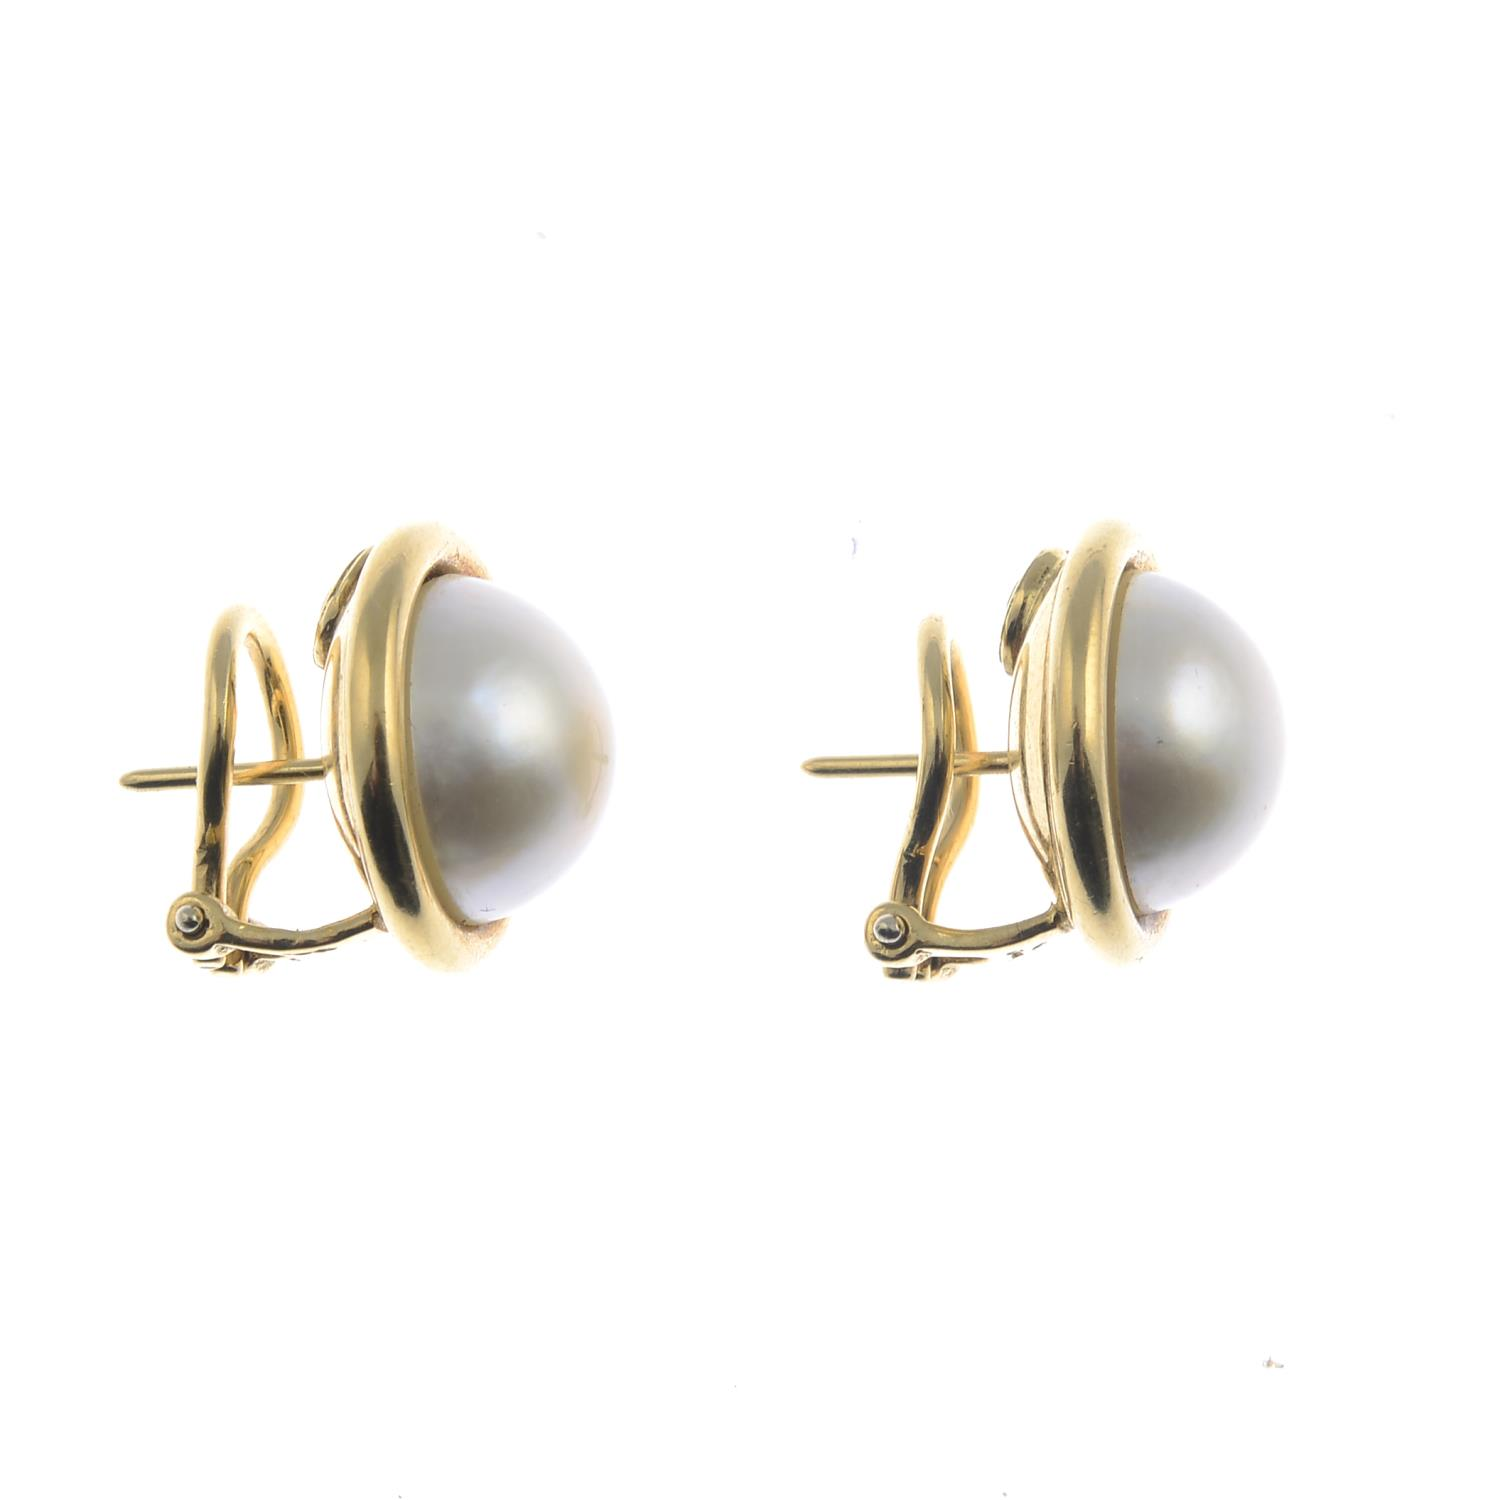 Lot 59 - A pair of 18ct gold mabe pearl earrings.Hallmarks for Sheffield.Diameter 1.7cms.